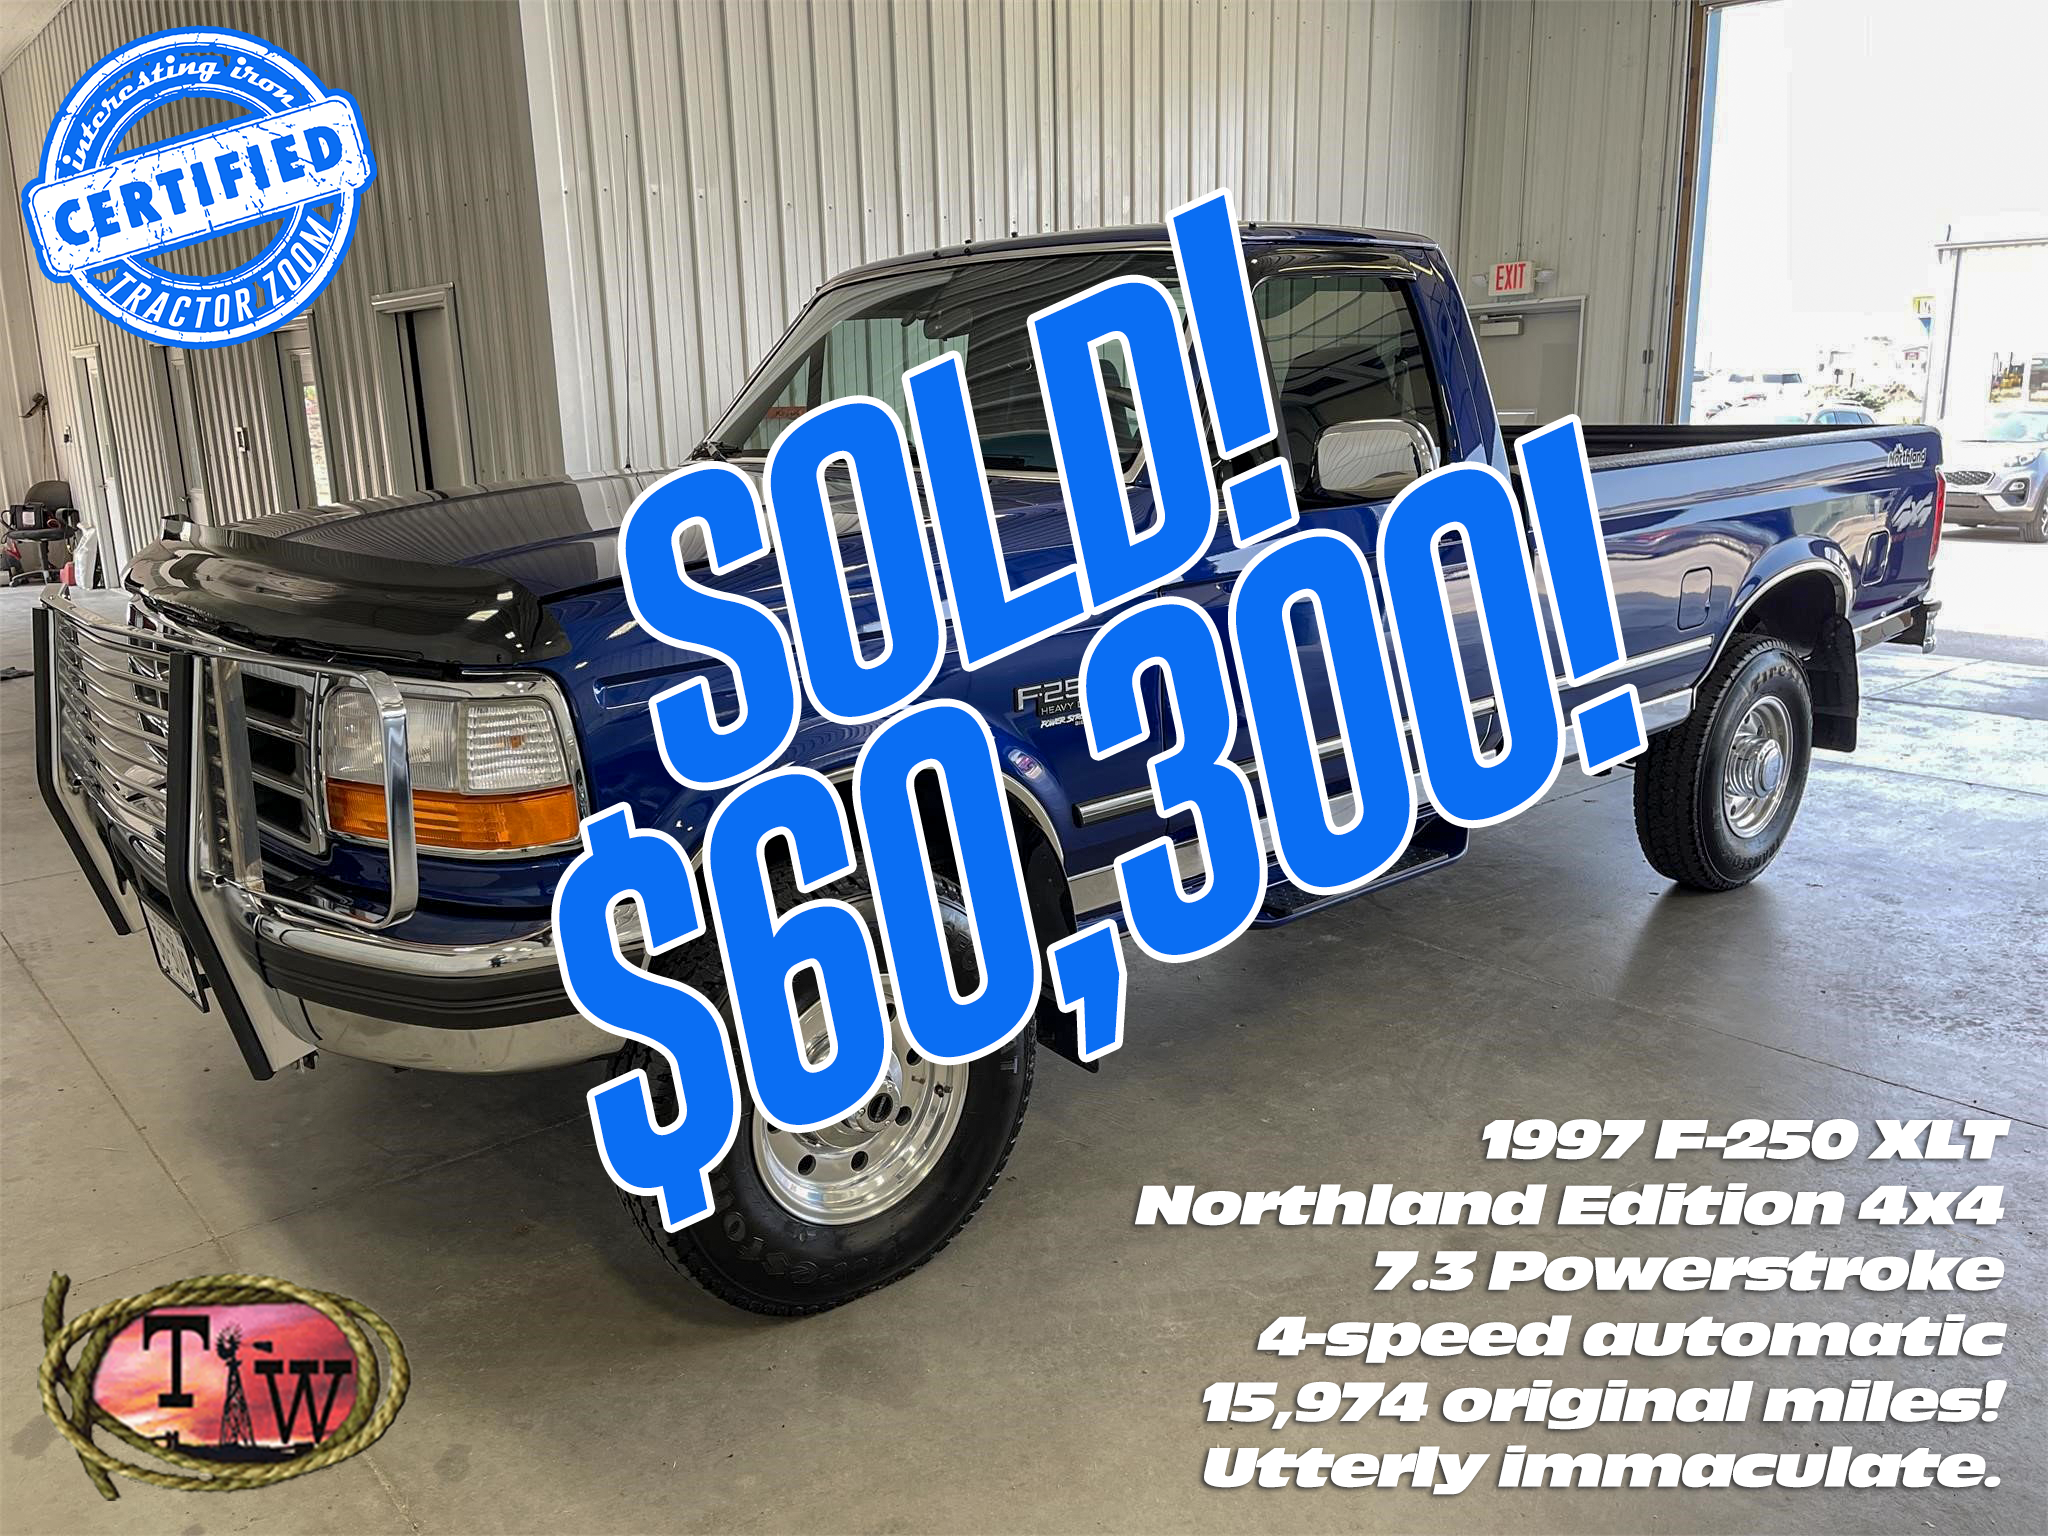 Ford F-250 power stroke truck at auction